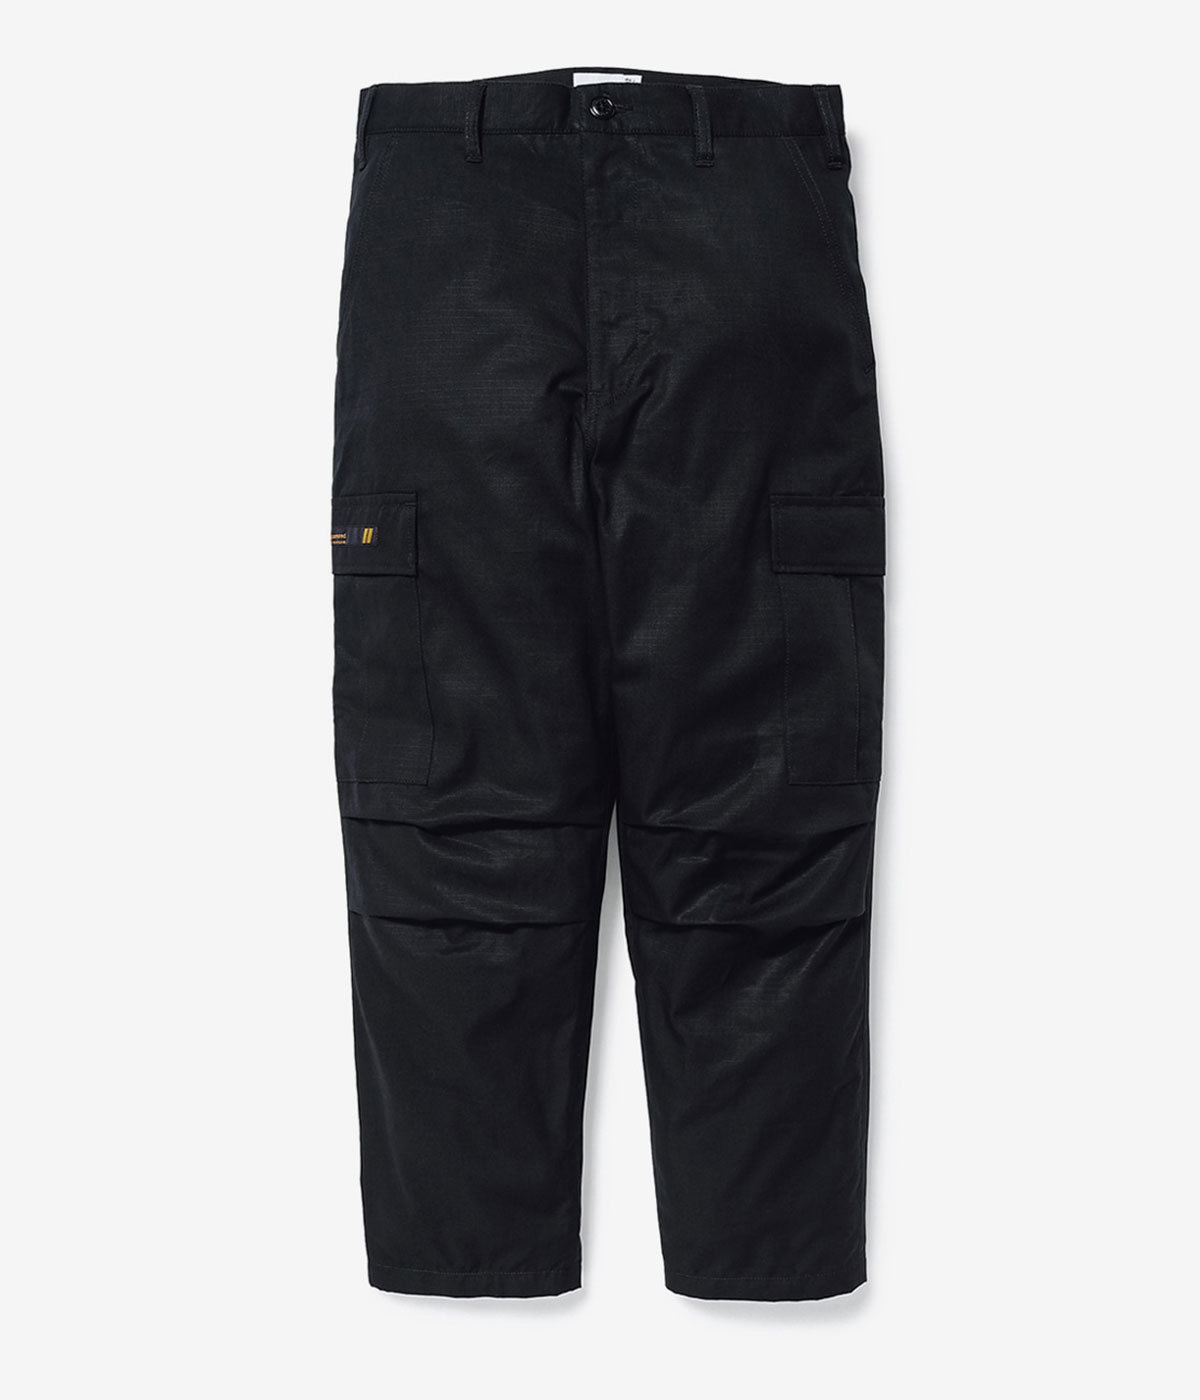 JUNGLE STOCK / TROUSERS / COTTON. RIPSTOP